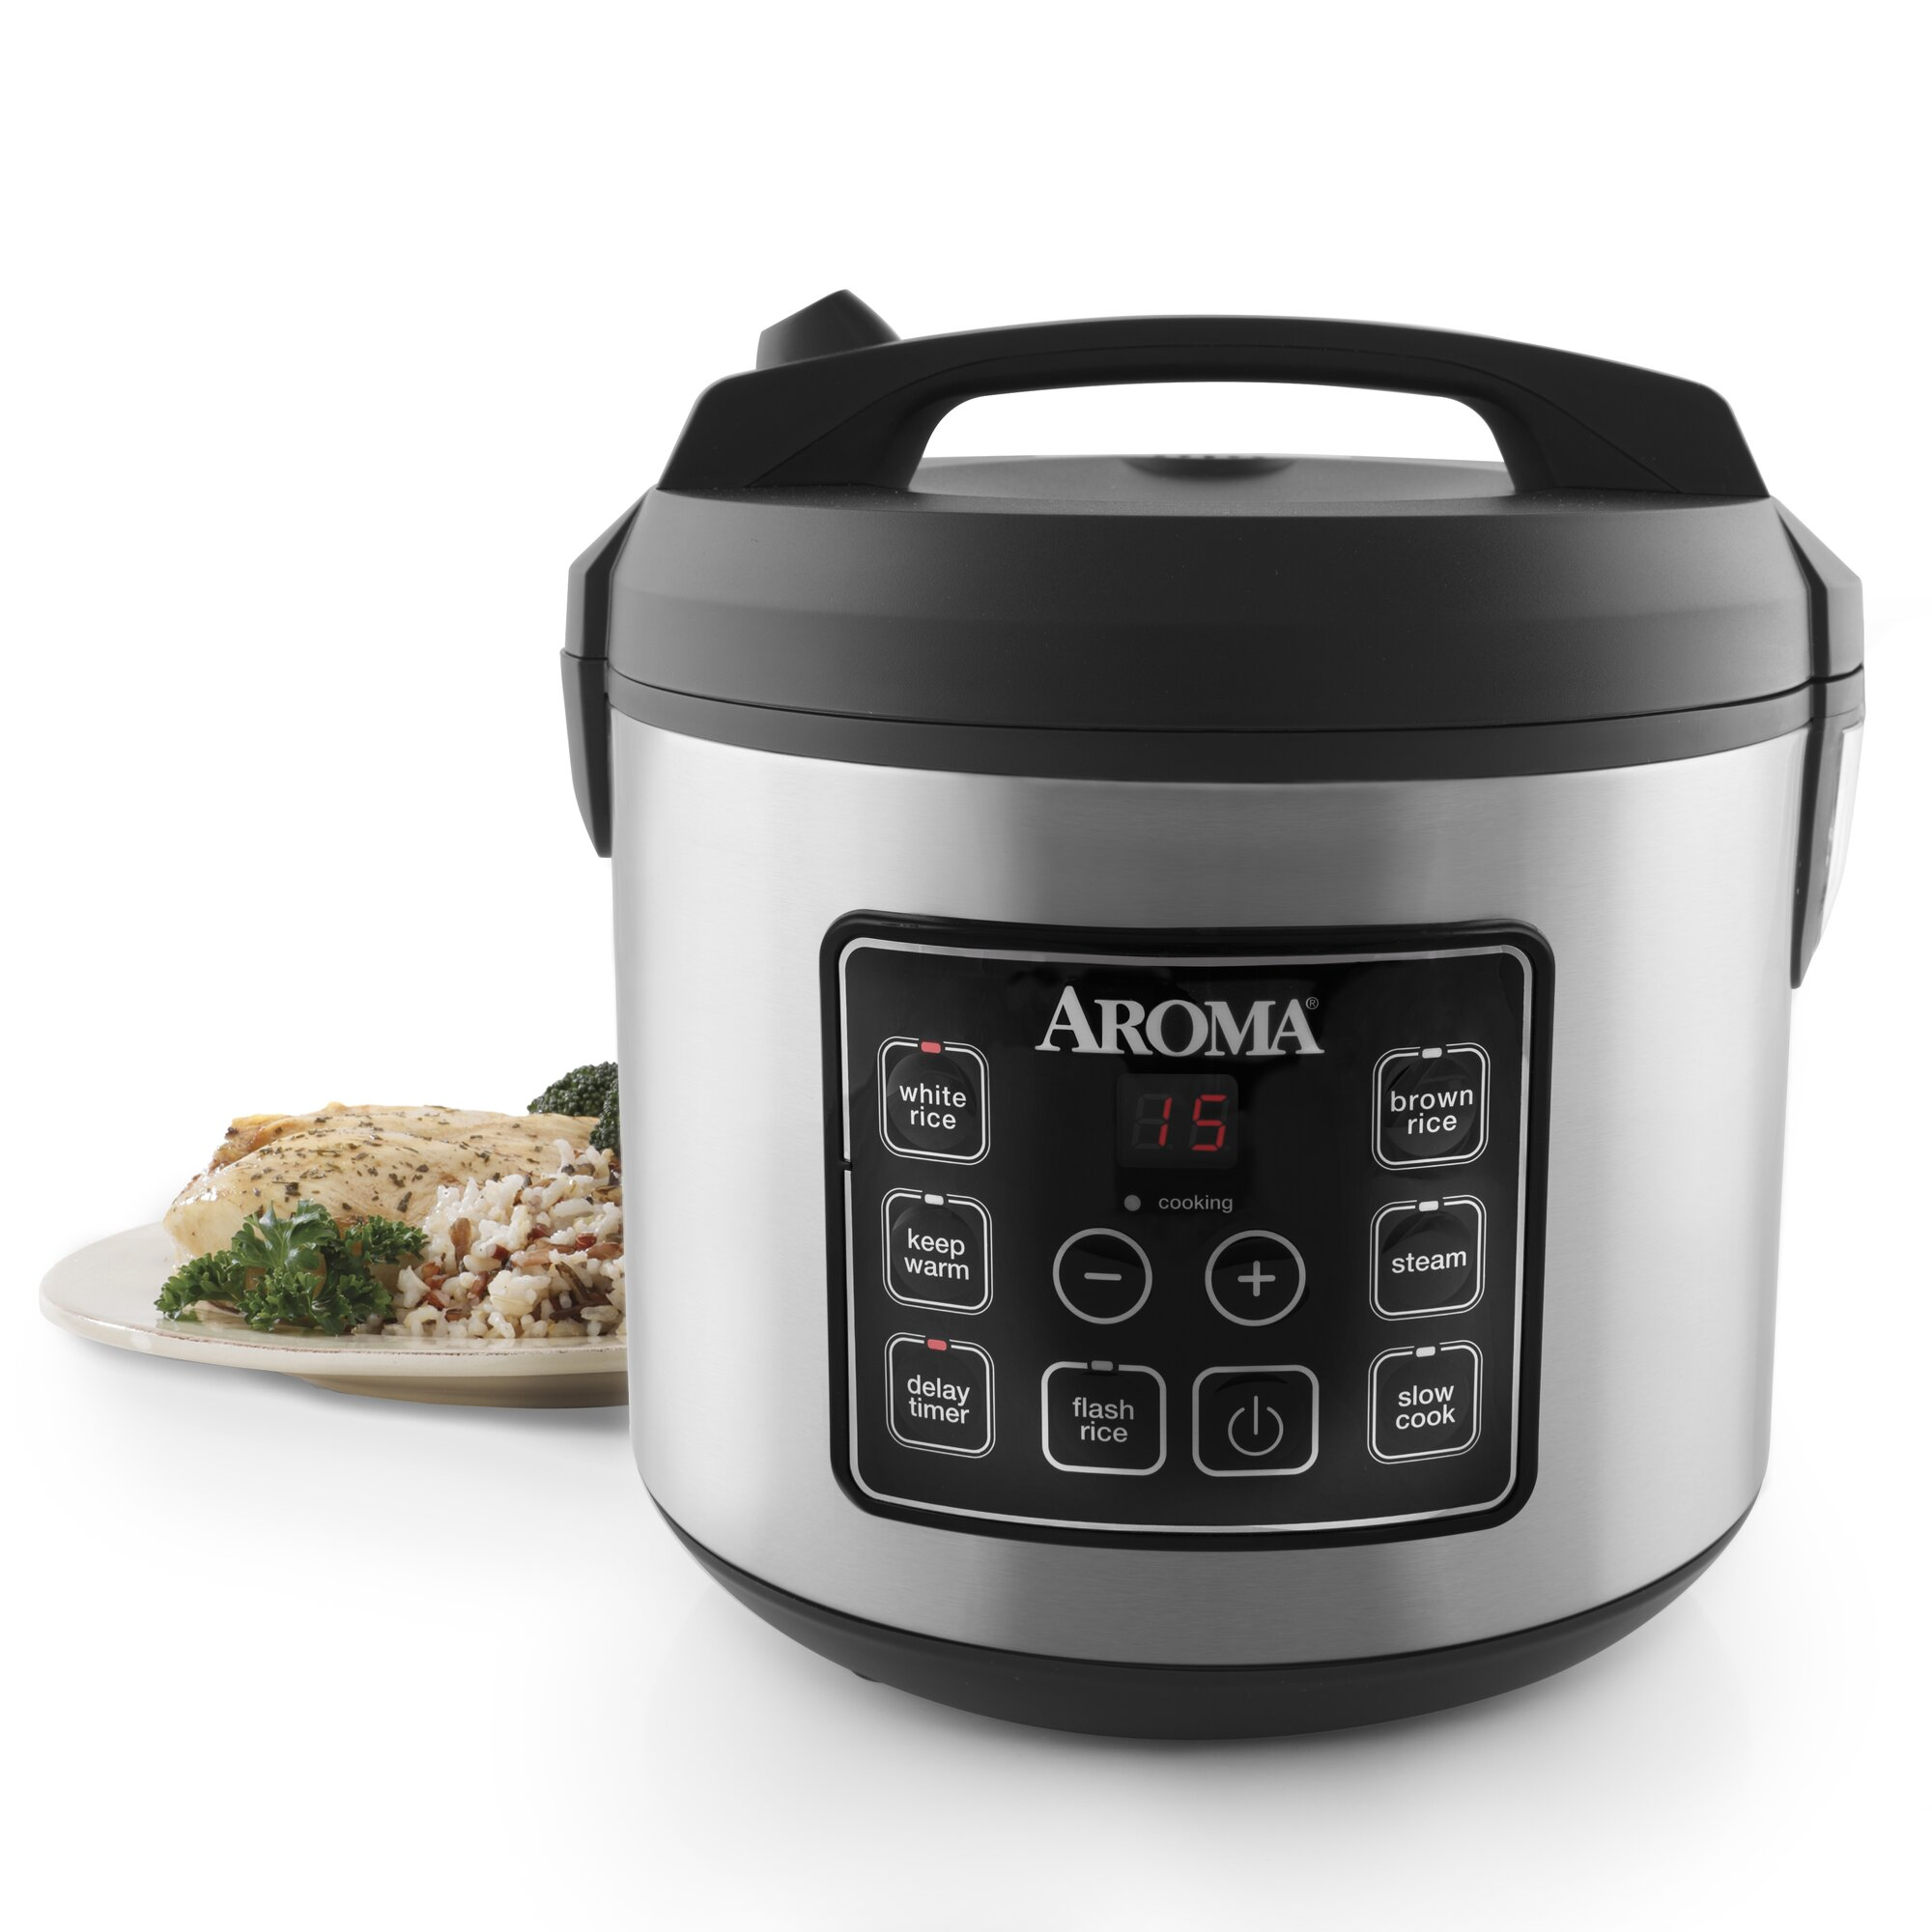 20cup Stainless Steel Digital Slow Cooker, Food Steamer And Rice Cooker Crockpot  Rice Pilaf Recipes How To Cook Brown